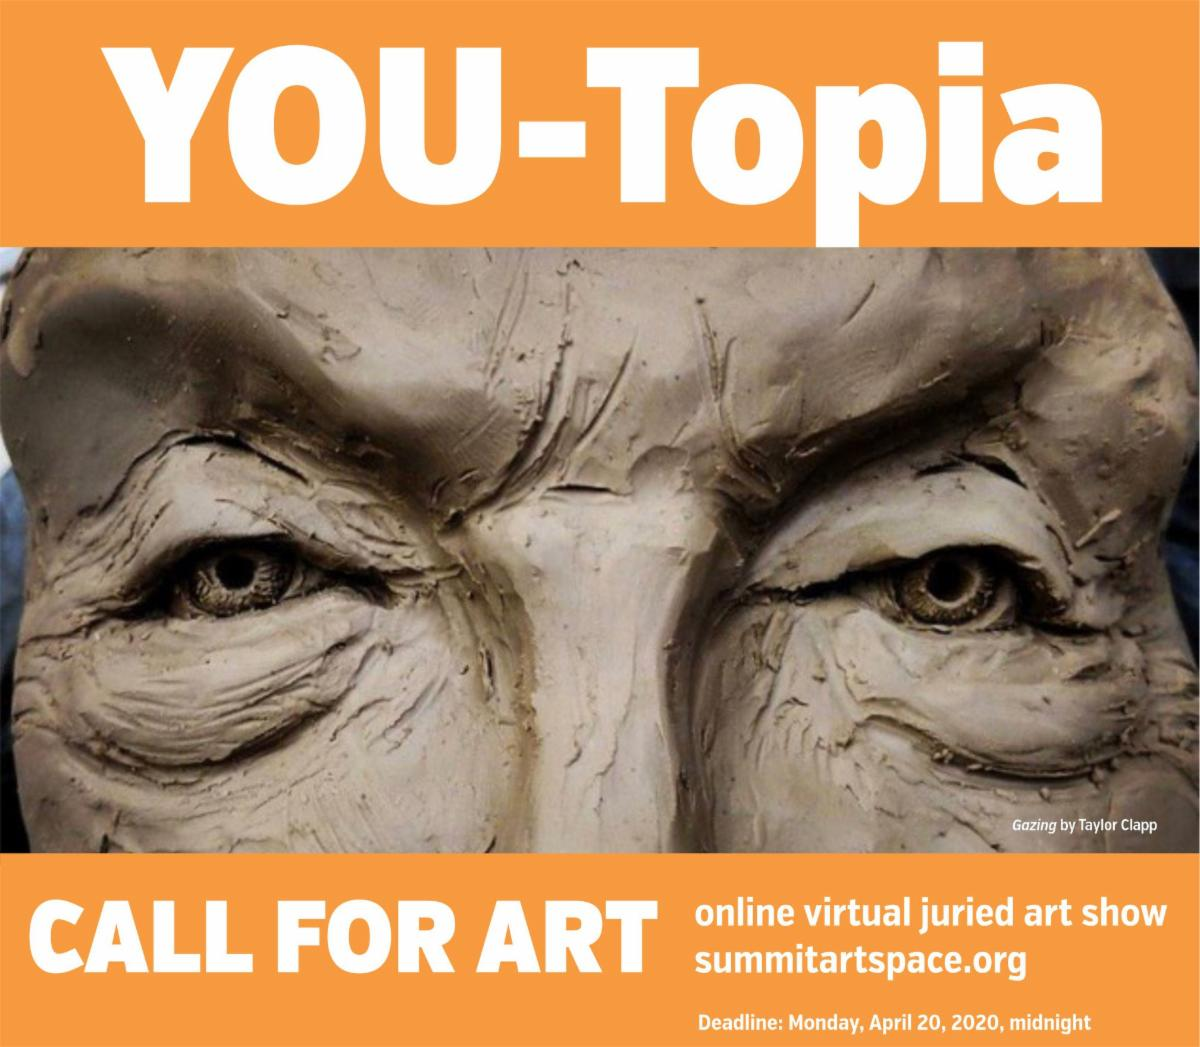 Summit Artspace call for art YOU-Topia